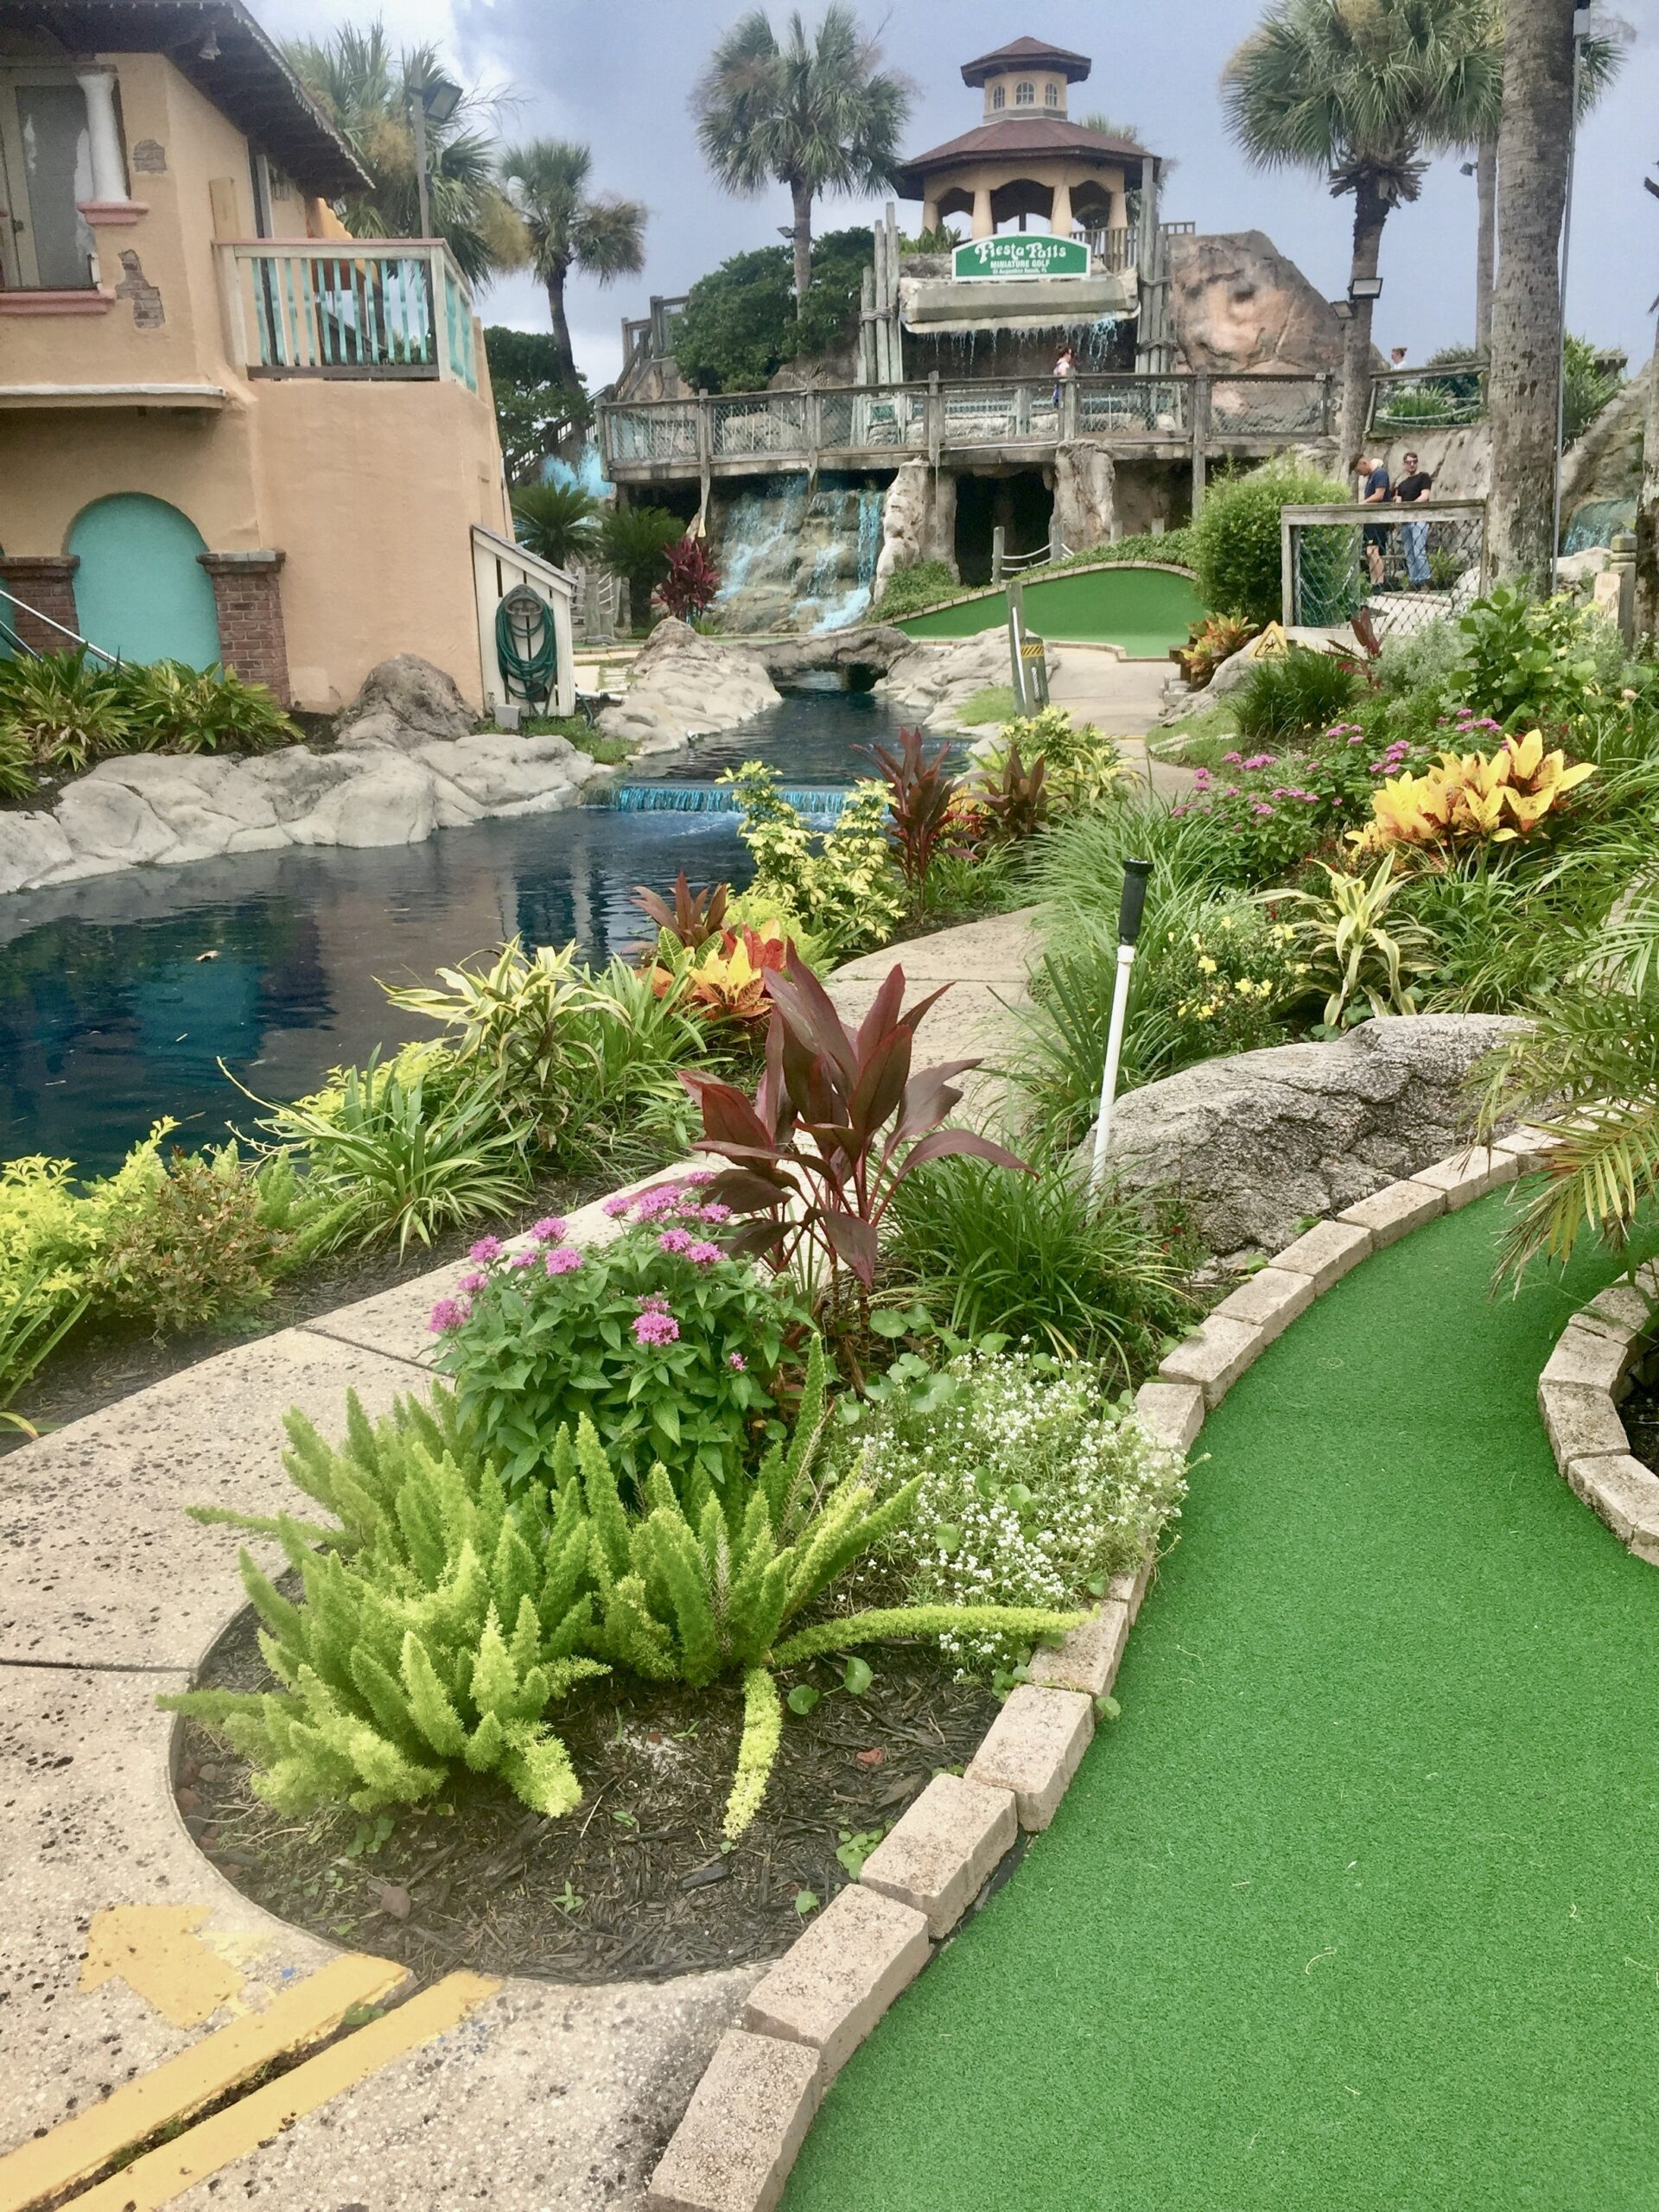 St. Augustine beaches provide mini golf diversion, with challenges.